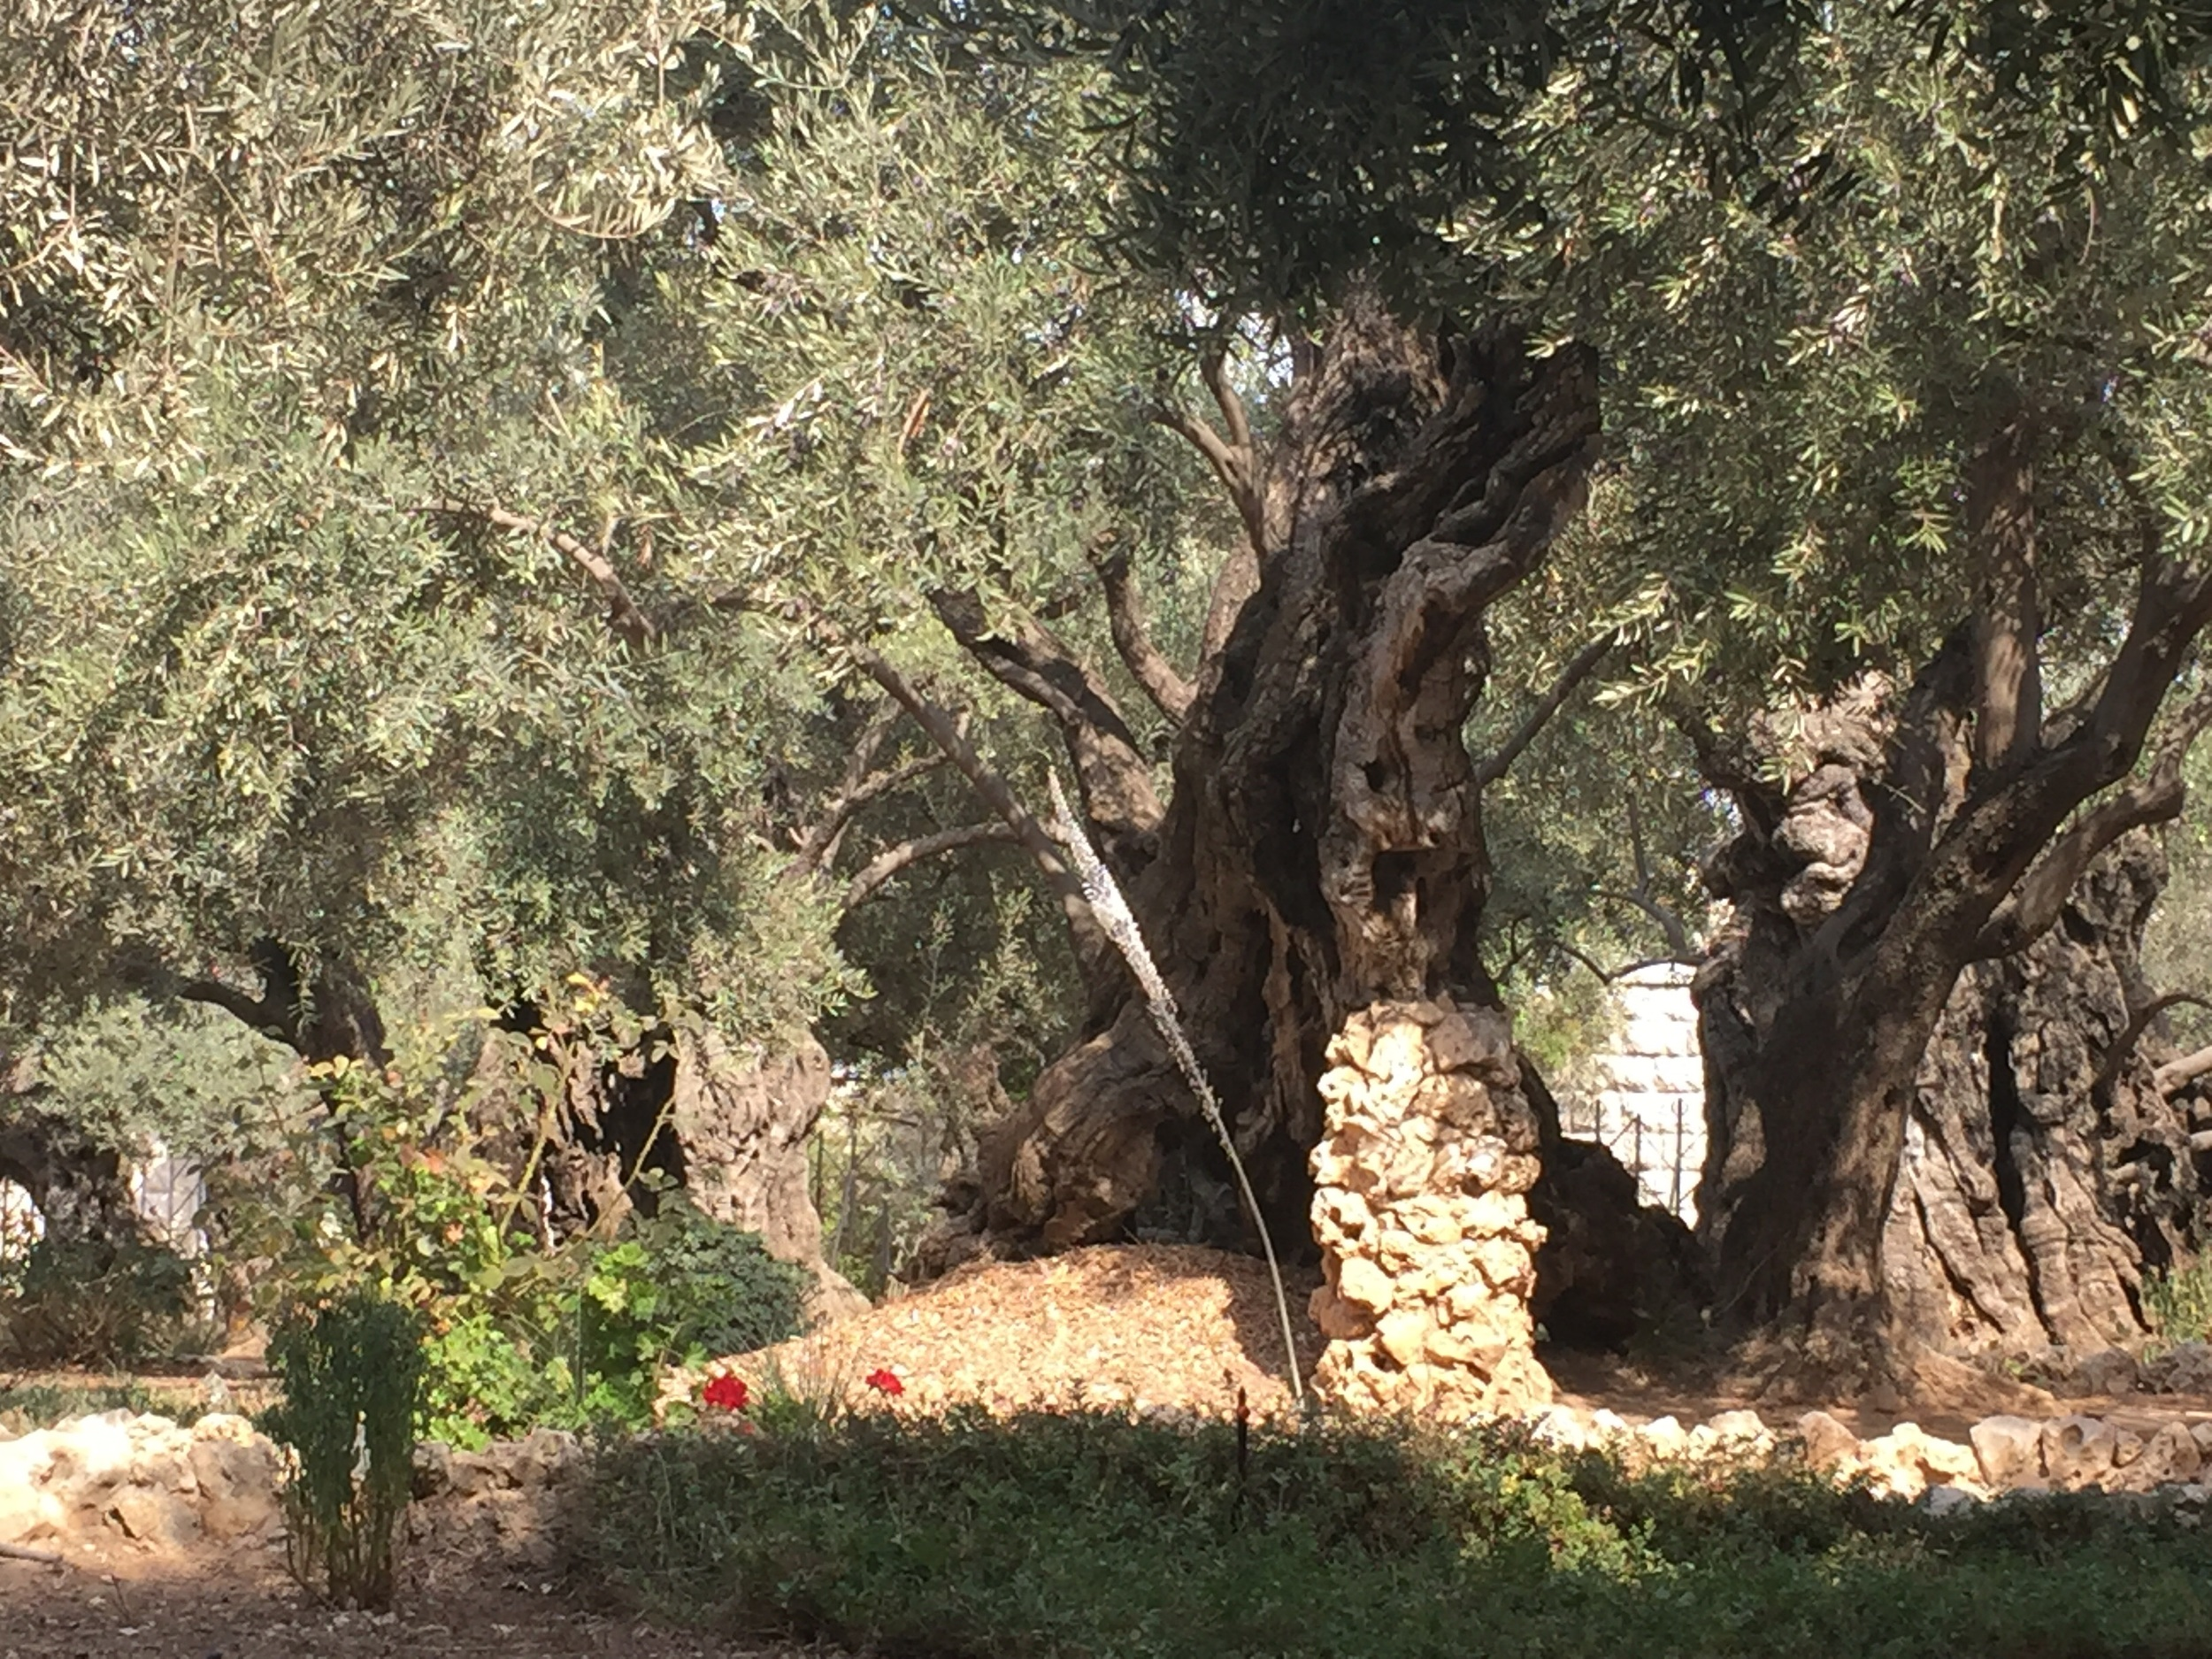 The traditional site of the Garden of Gethsemane has some olive trees dating to the time of Christ!